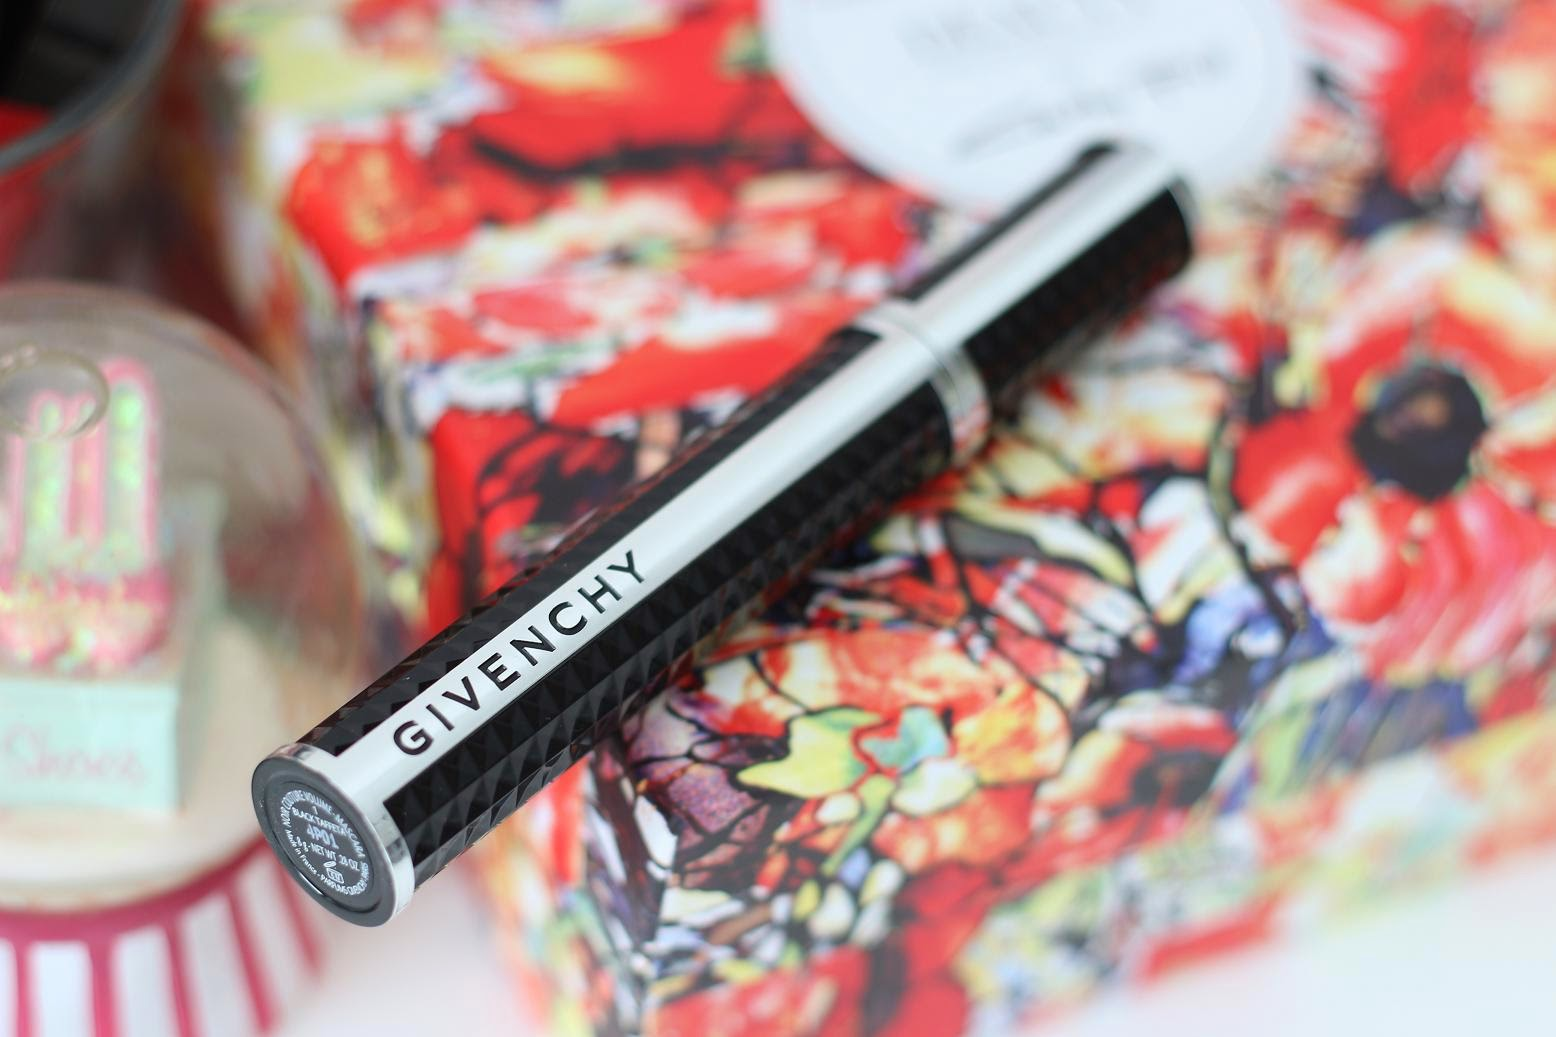 Givenchy Noir Couture Volume mascara